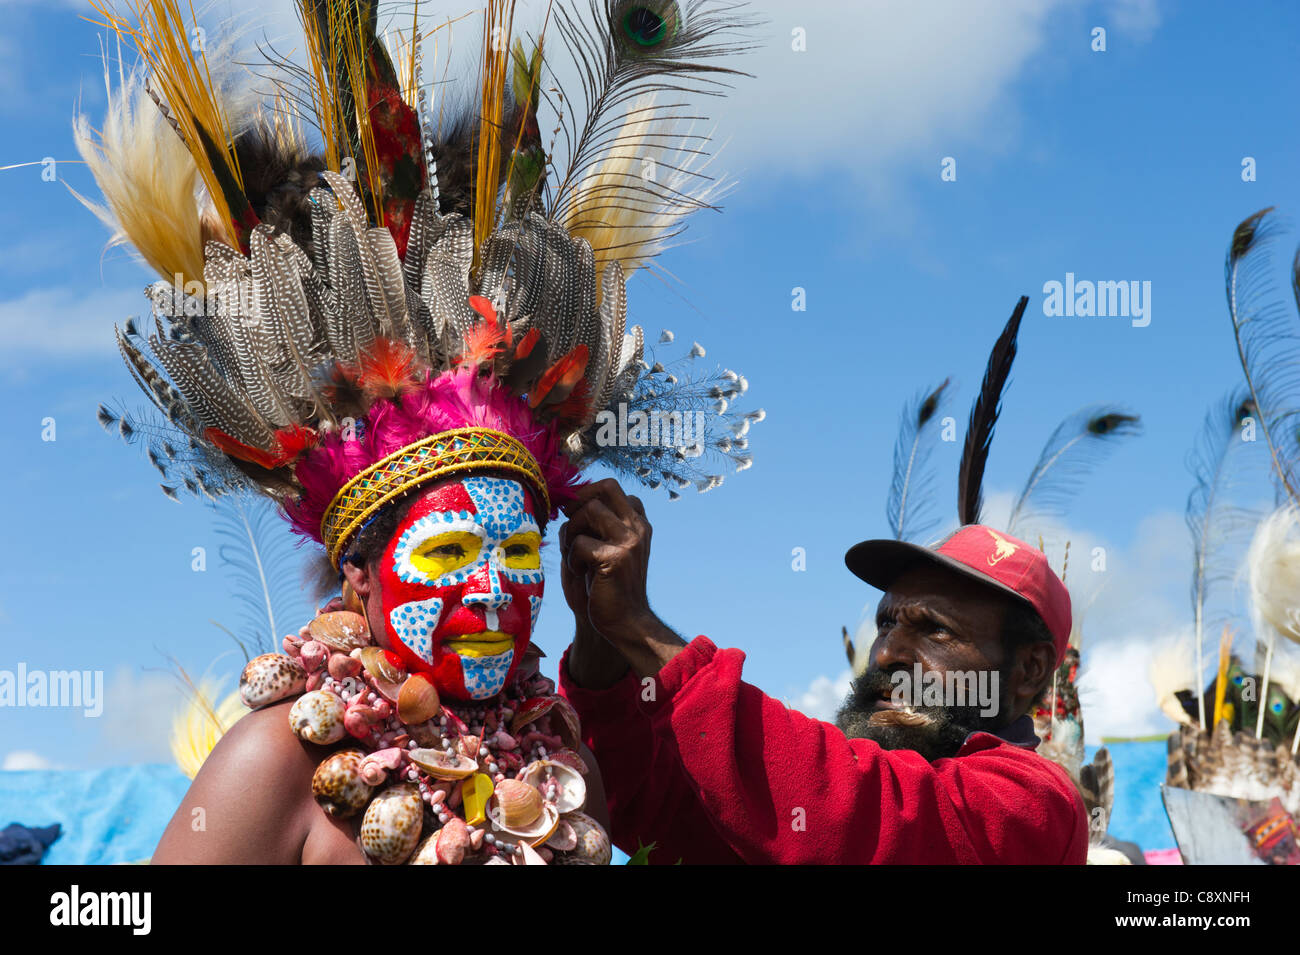 Tribal performers at Mt Hagen show in Papua New Guinea wearing bird of paradise plumes in head dresses - Stock Image